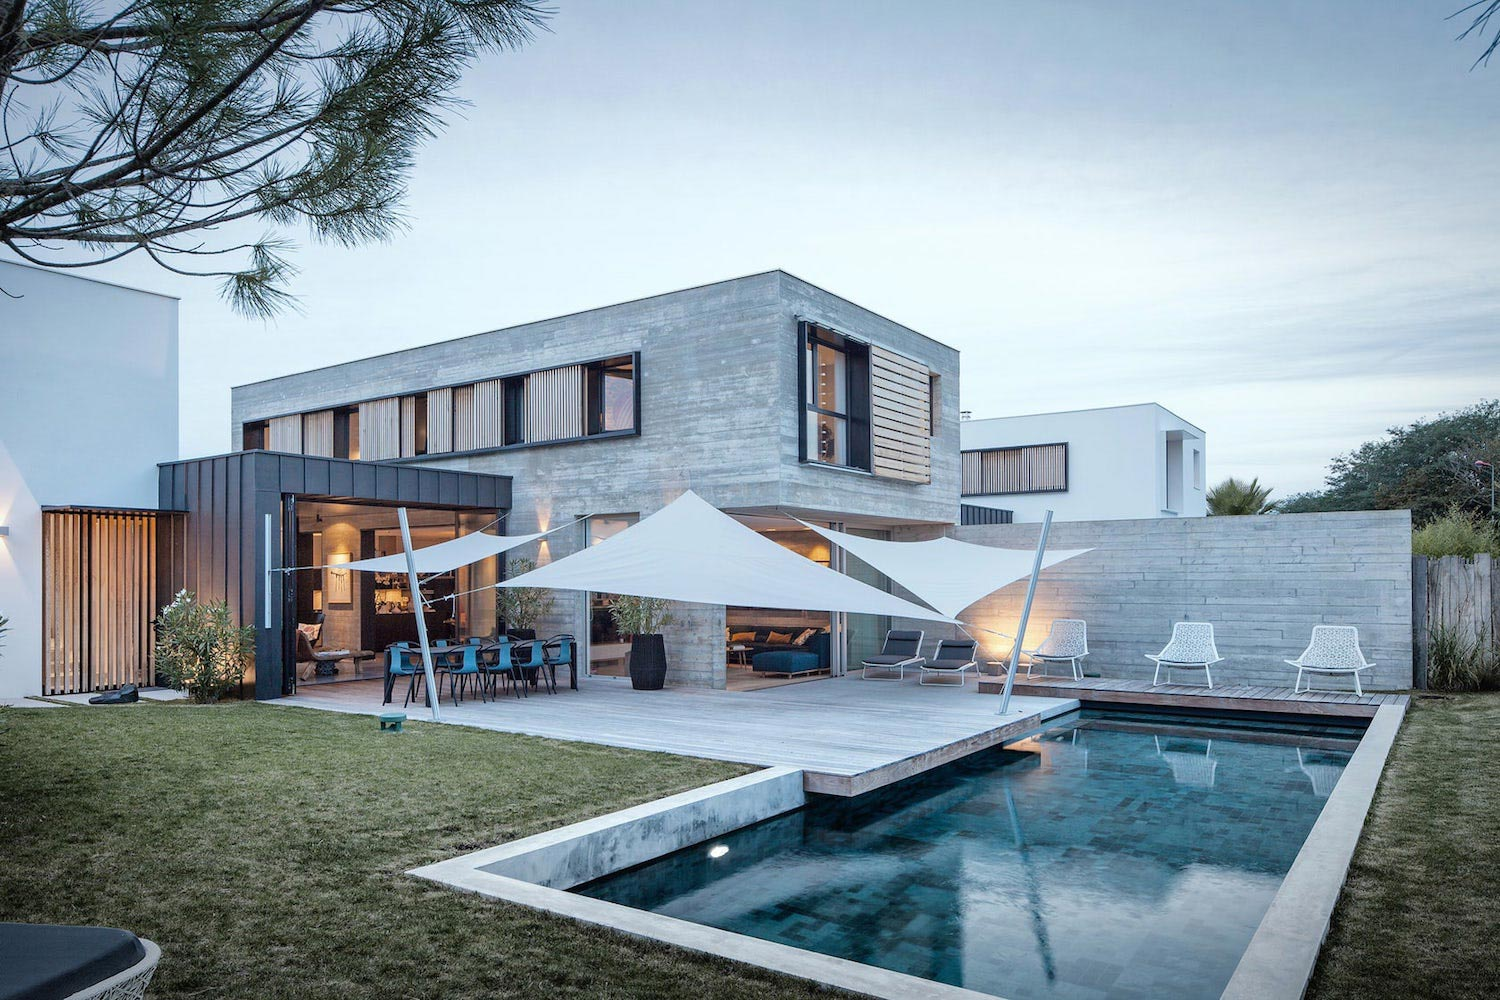 Two Simple And Minimal Familial Houses With Great Care For